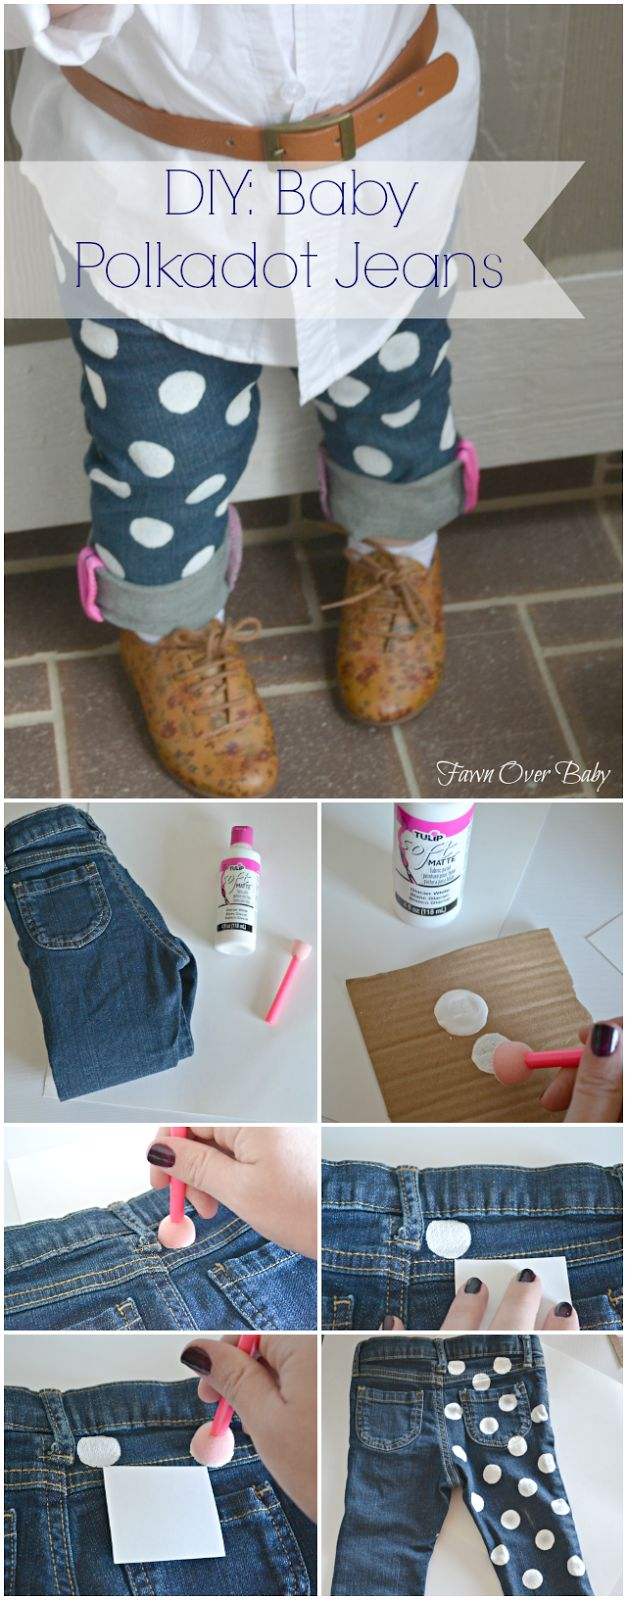 DIY: Baby Polka Dot Jeans/Fawn Over Baby #Diy #diybaby #babyfashion I could do this with big girl jeans!